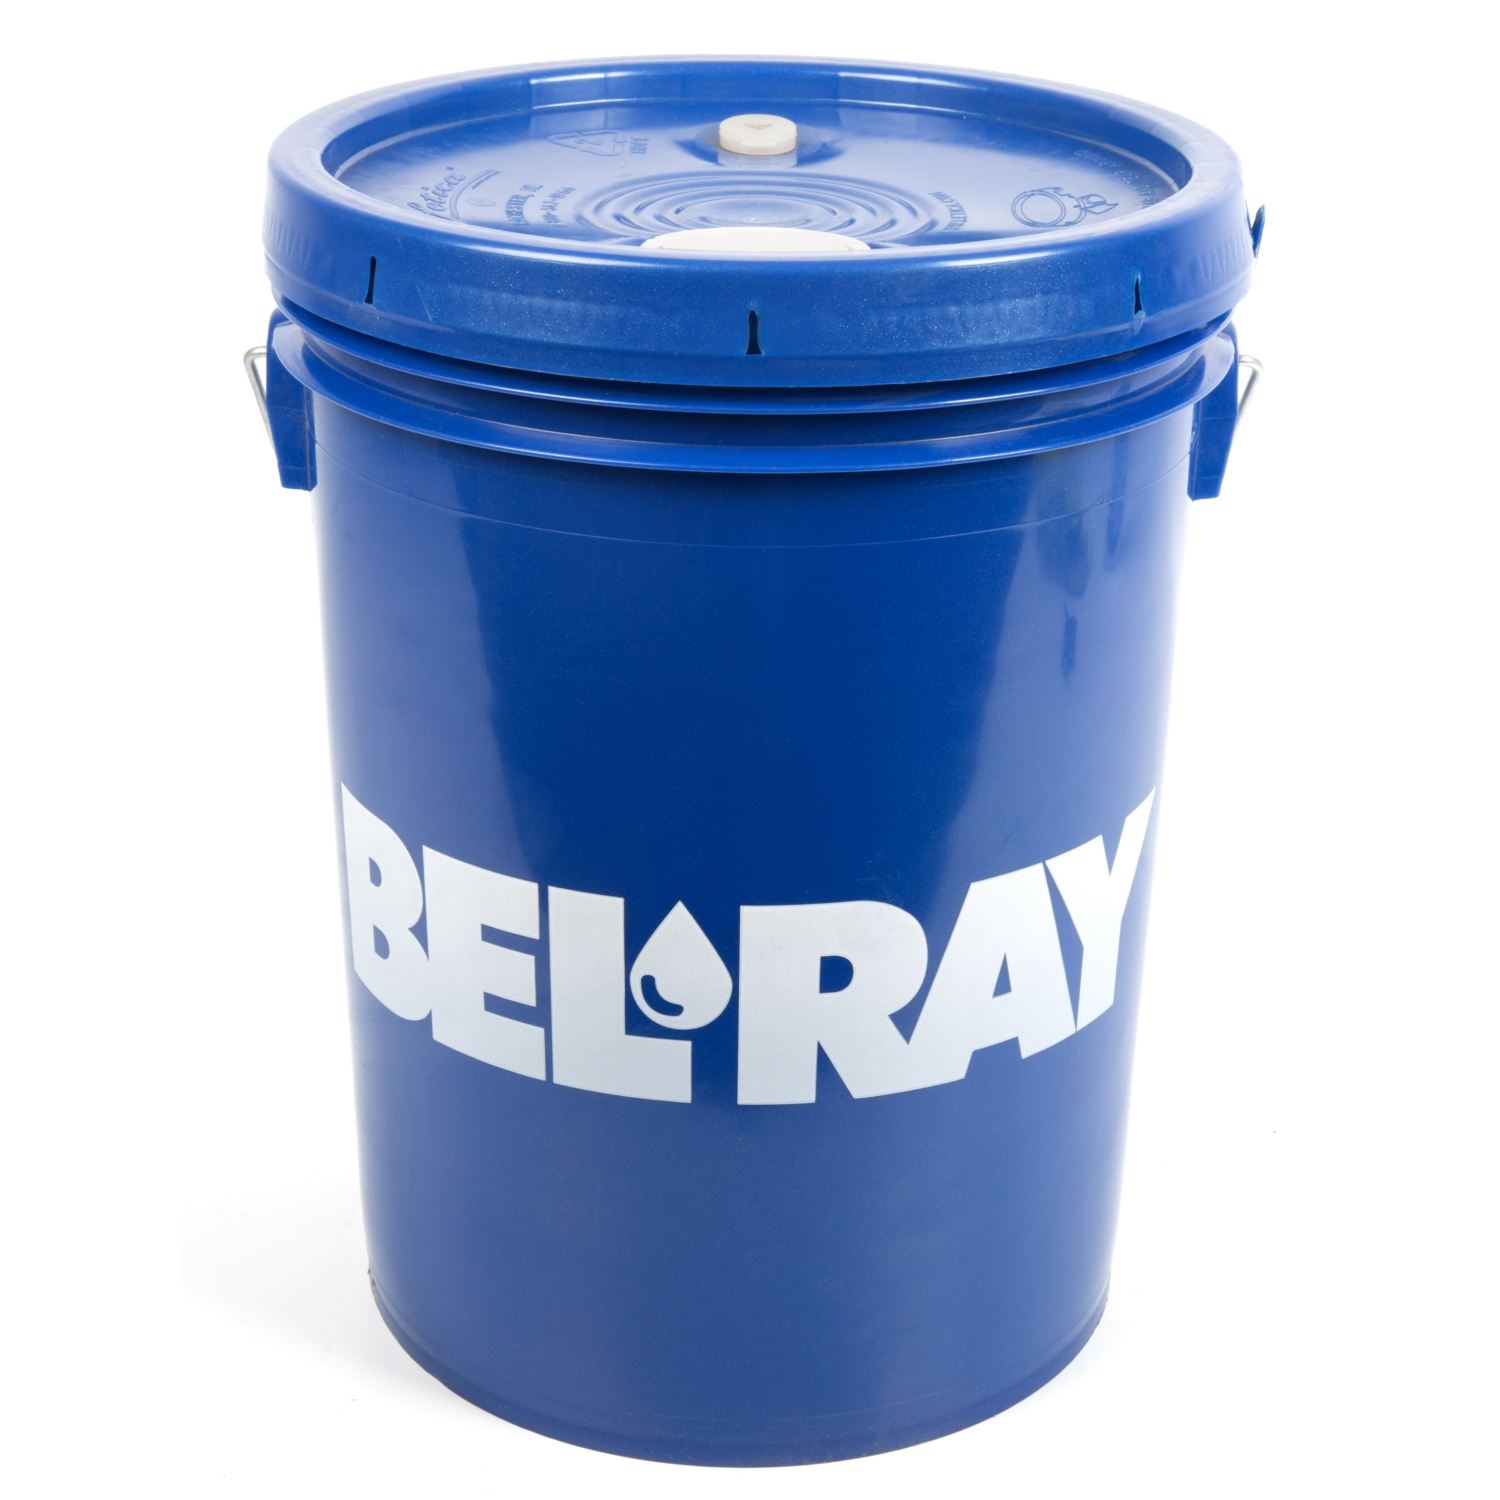 Bel-Ray Semi-Synthetic Gear Oil 20 L /5.28 G  20 L /5.28 G #733300